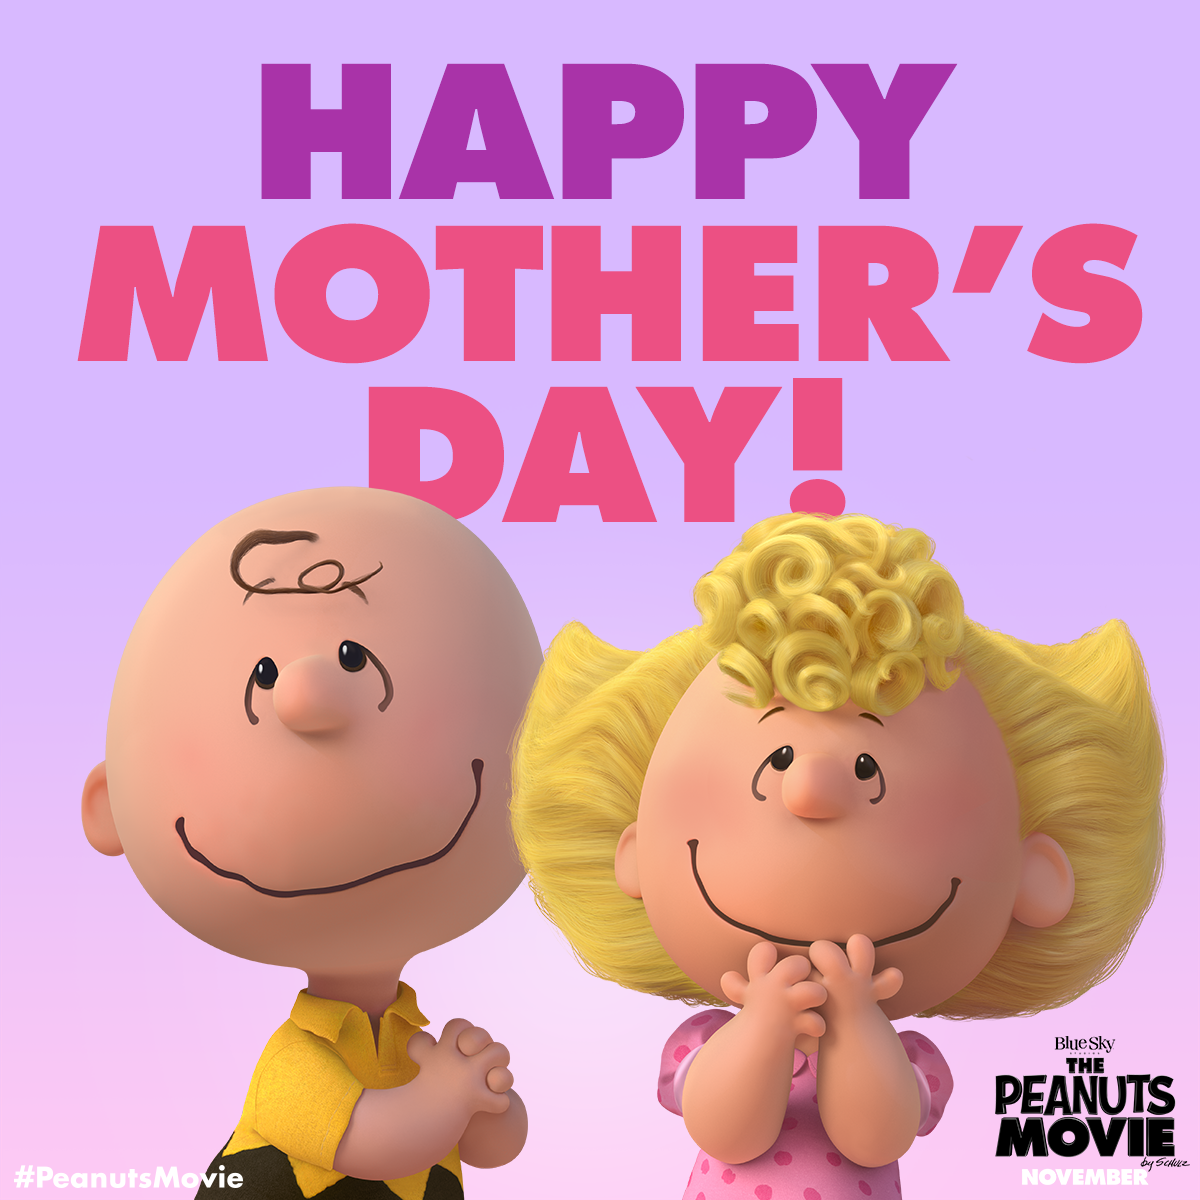 Wishing You The Happiest Mother S Day From The Peanuts Movie Gang Peanuts Movie Happy Mothers Day Snoopy Pictures